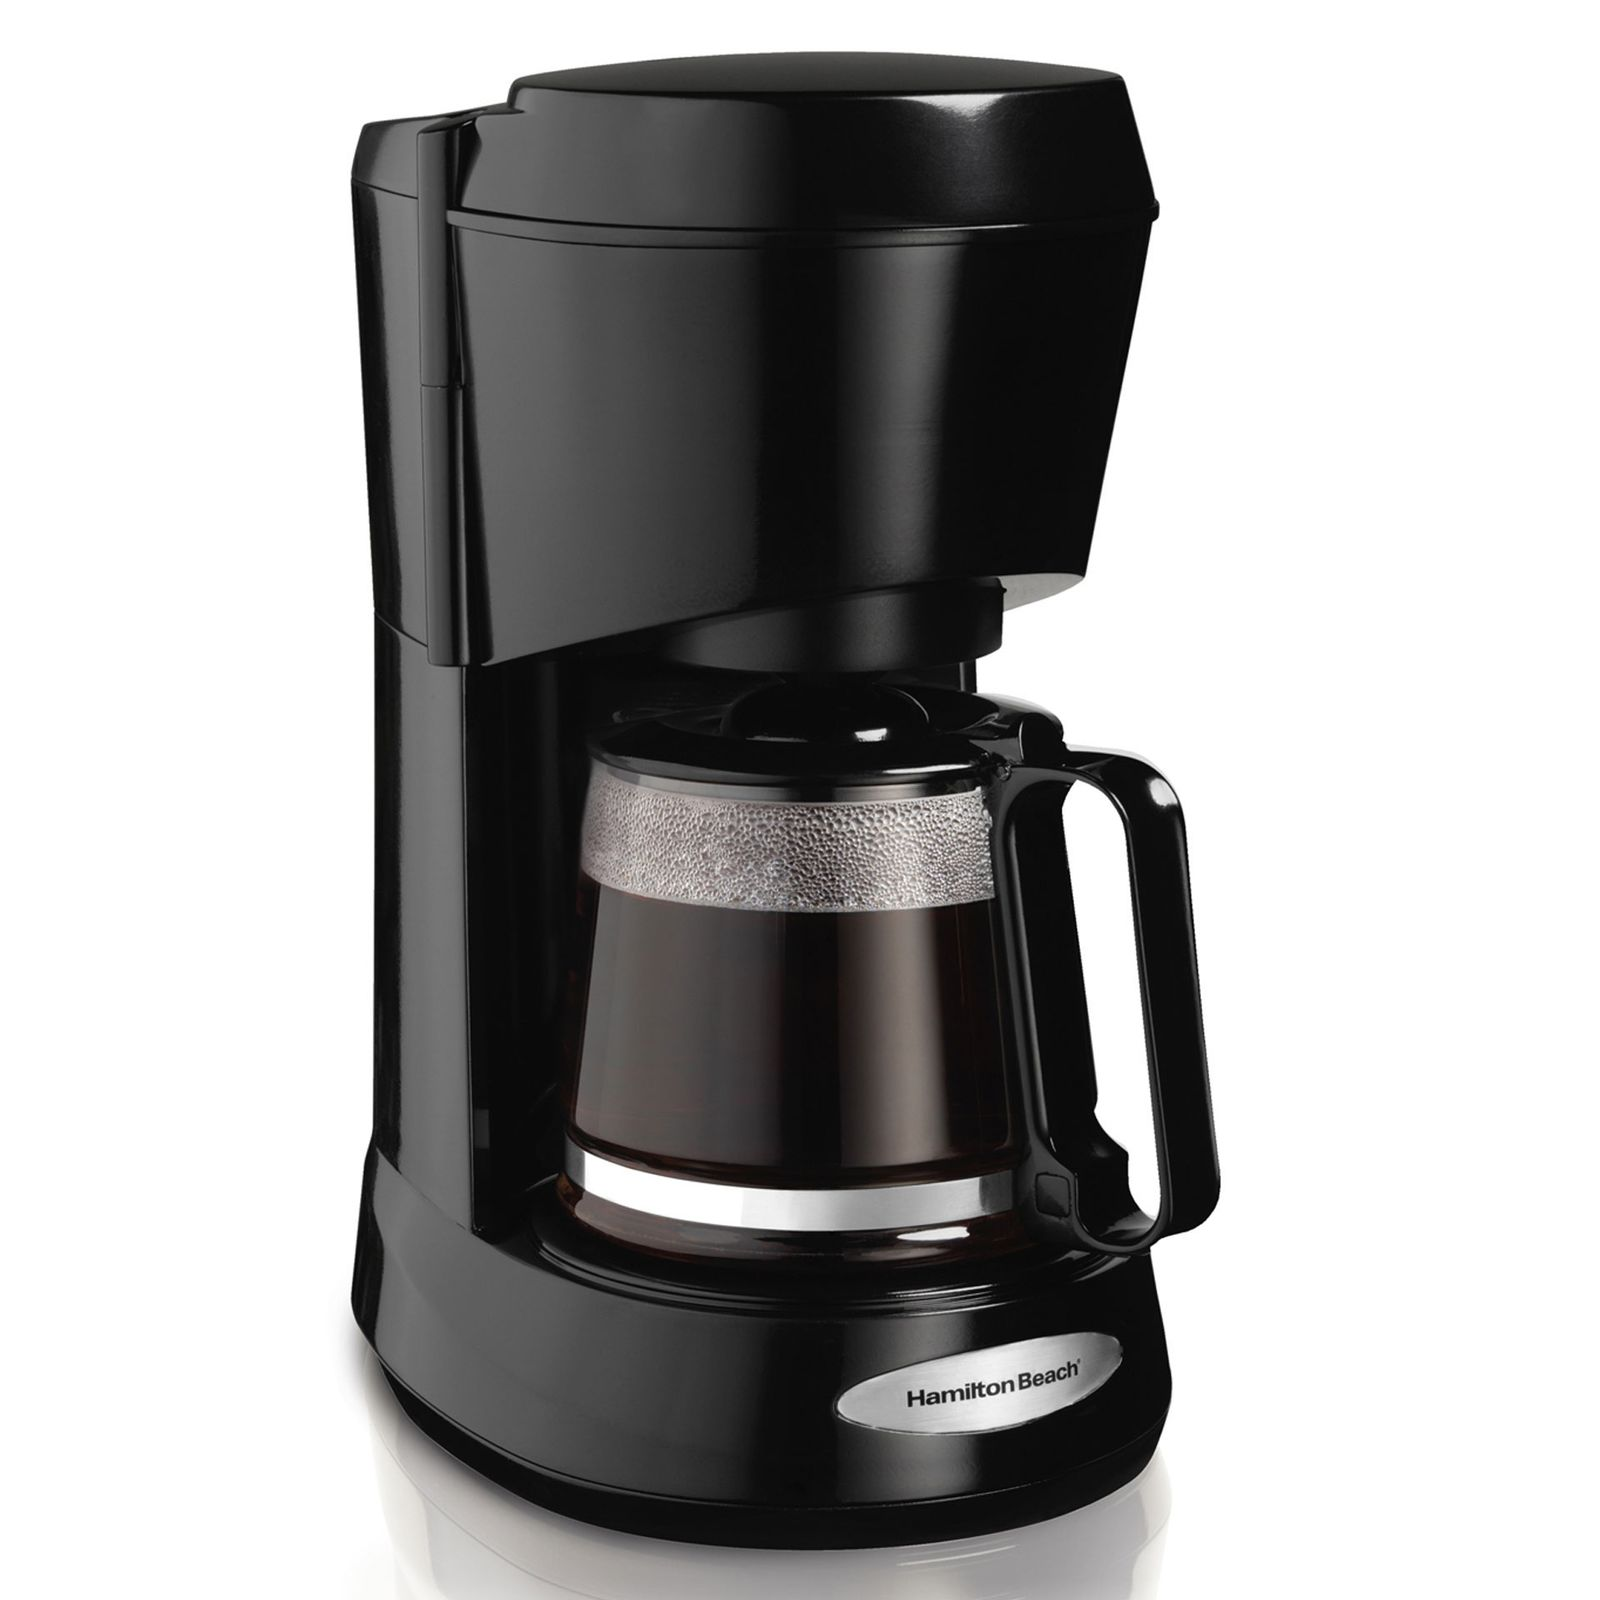 Best coffee maker for Best coffee maker